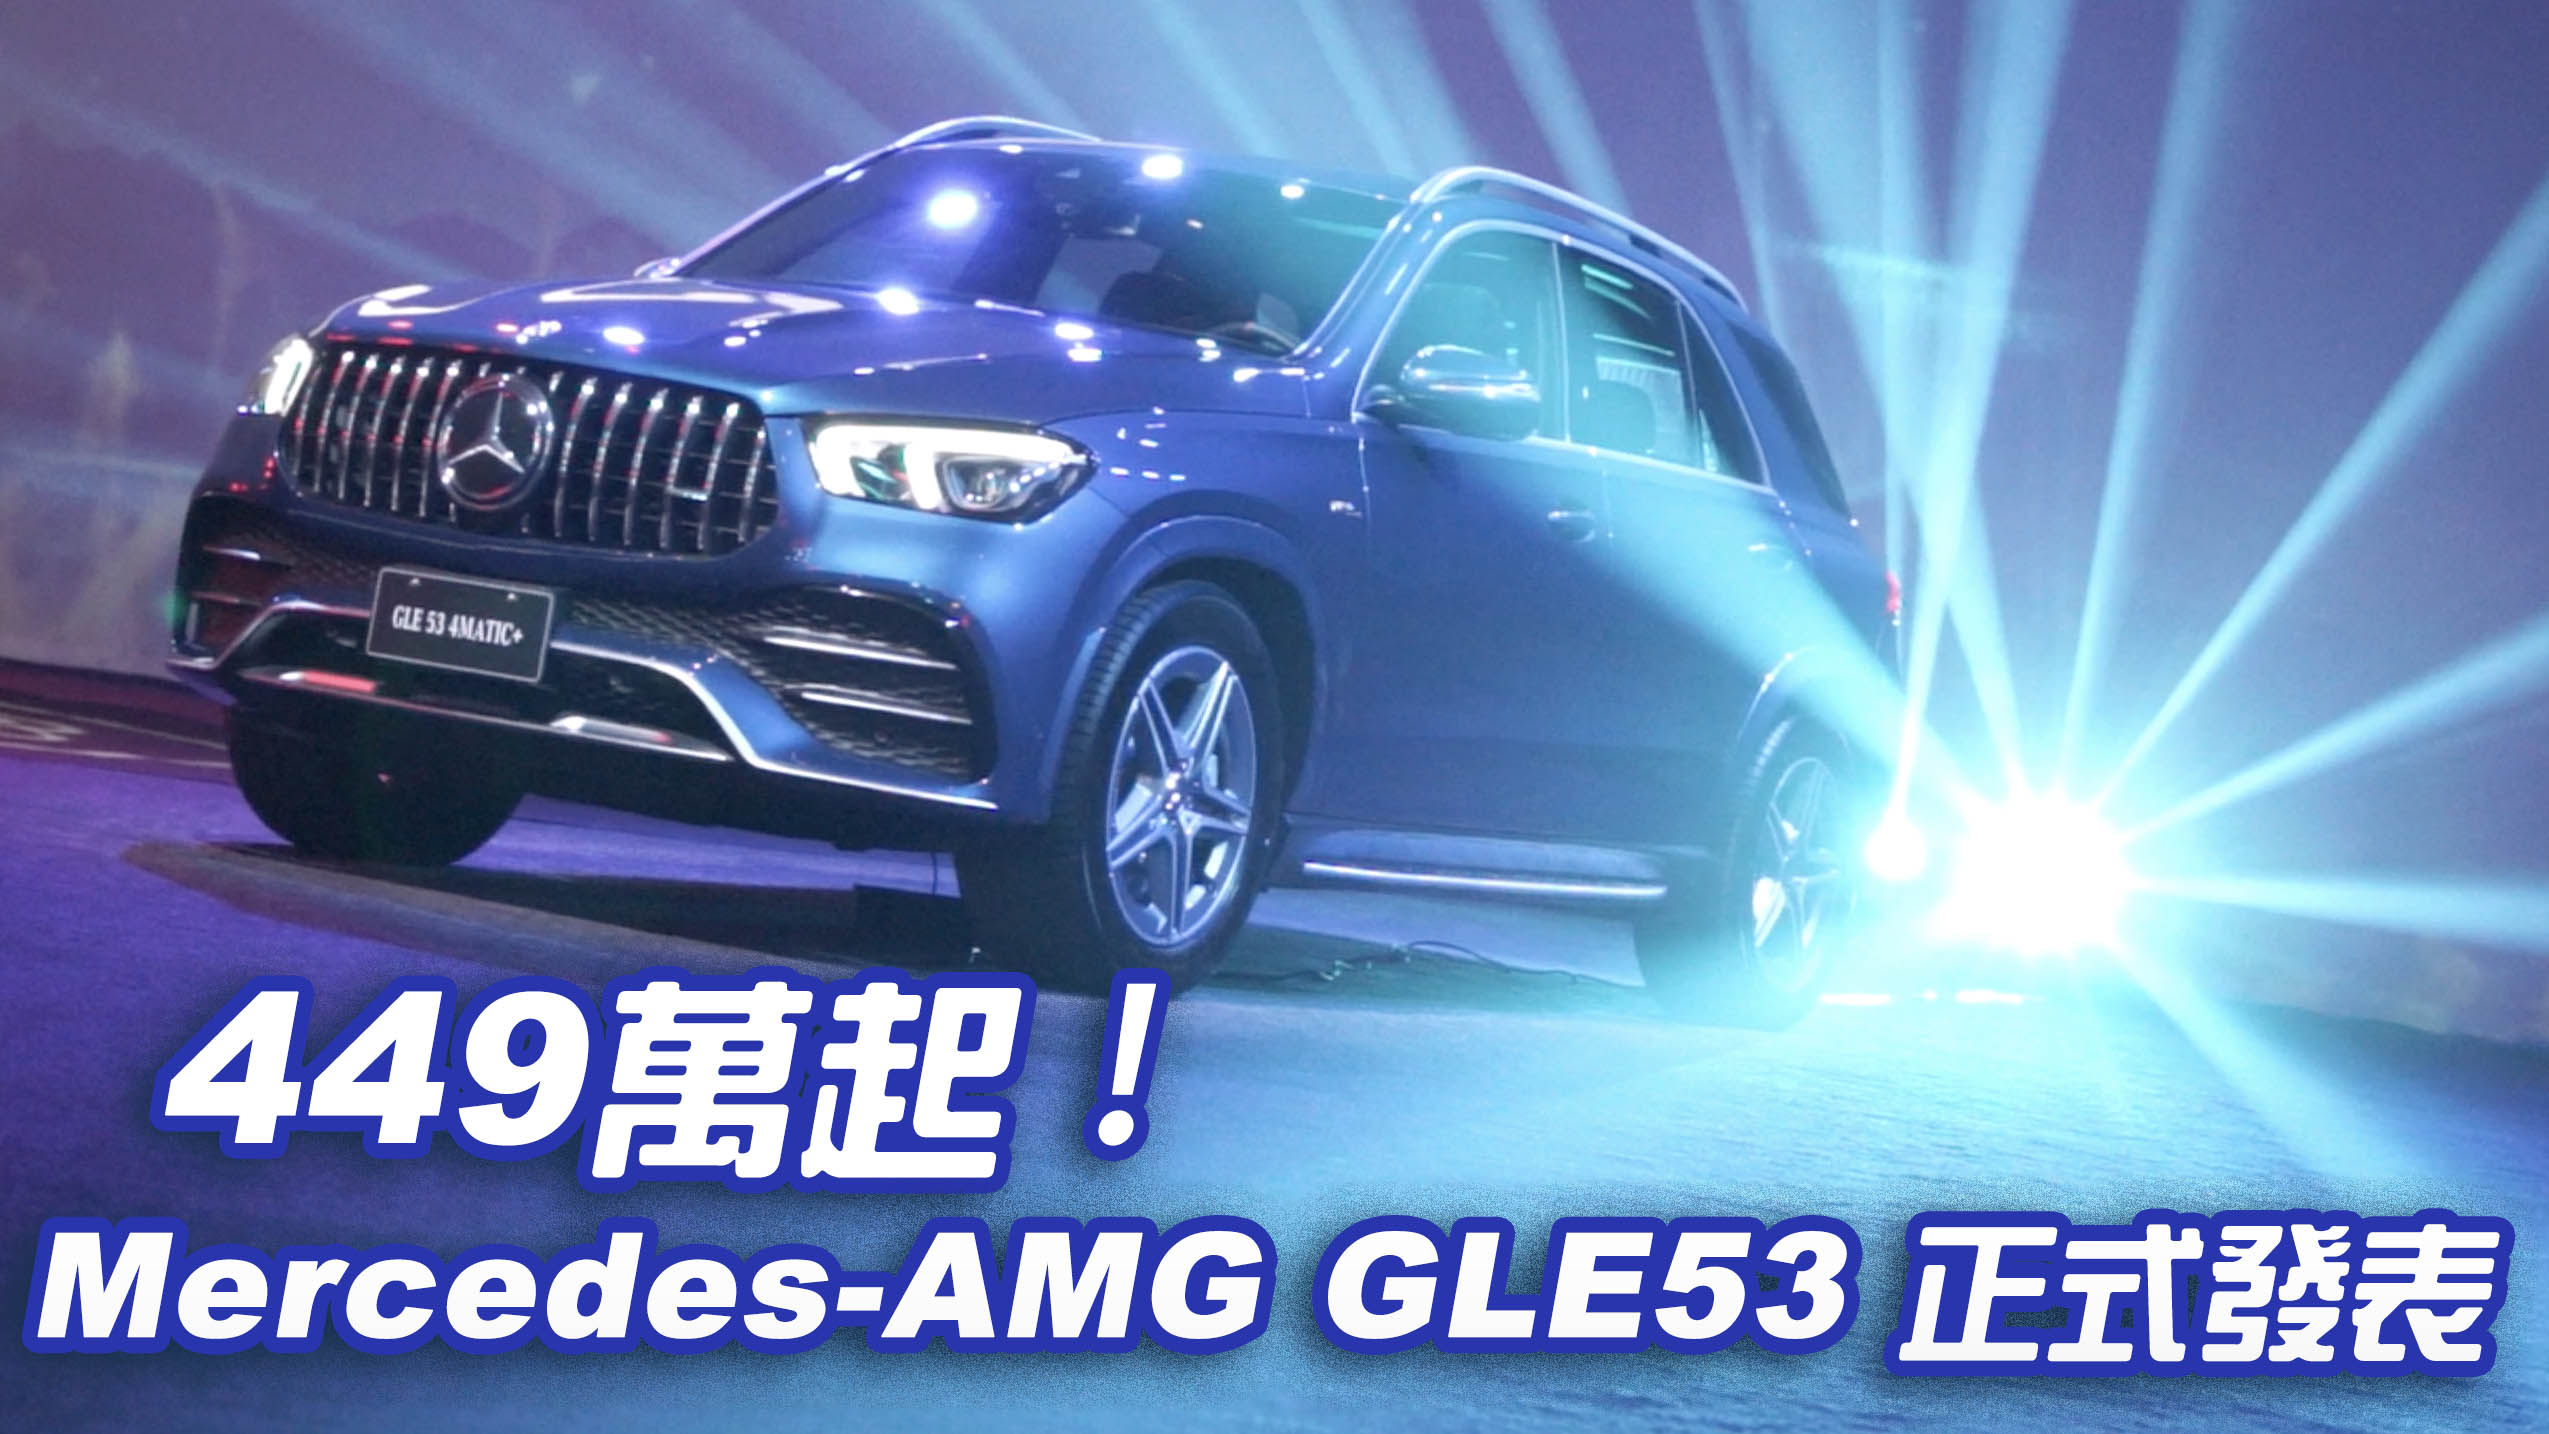 EQ Boost科技加持!Mercedes-AMG GLE 53 4MATIC+ 正式發表!